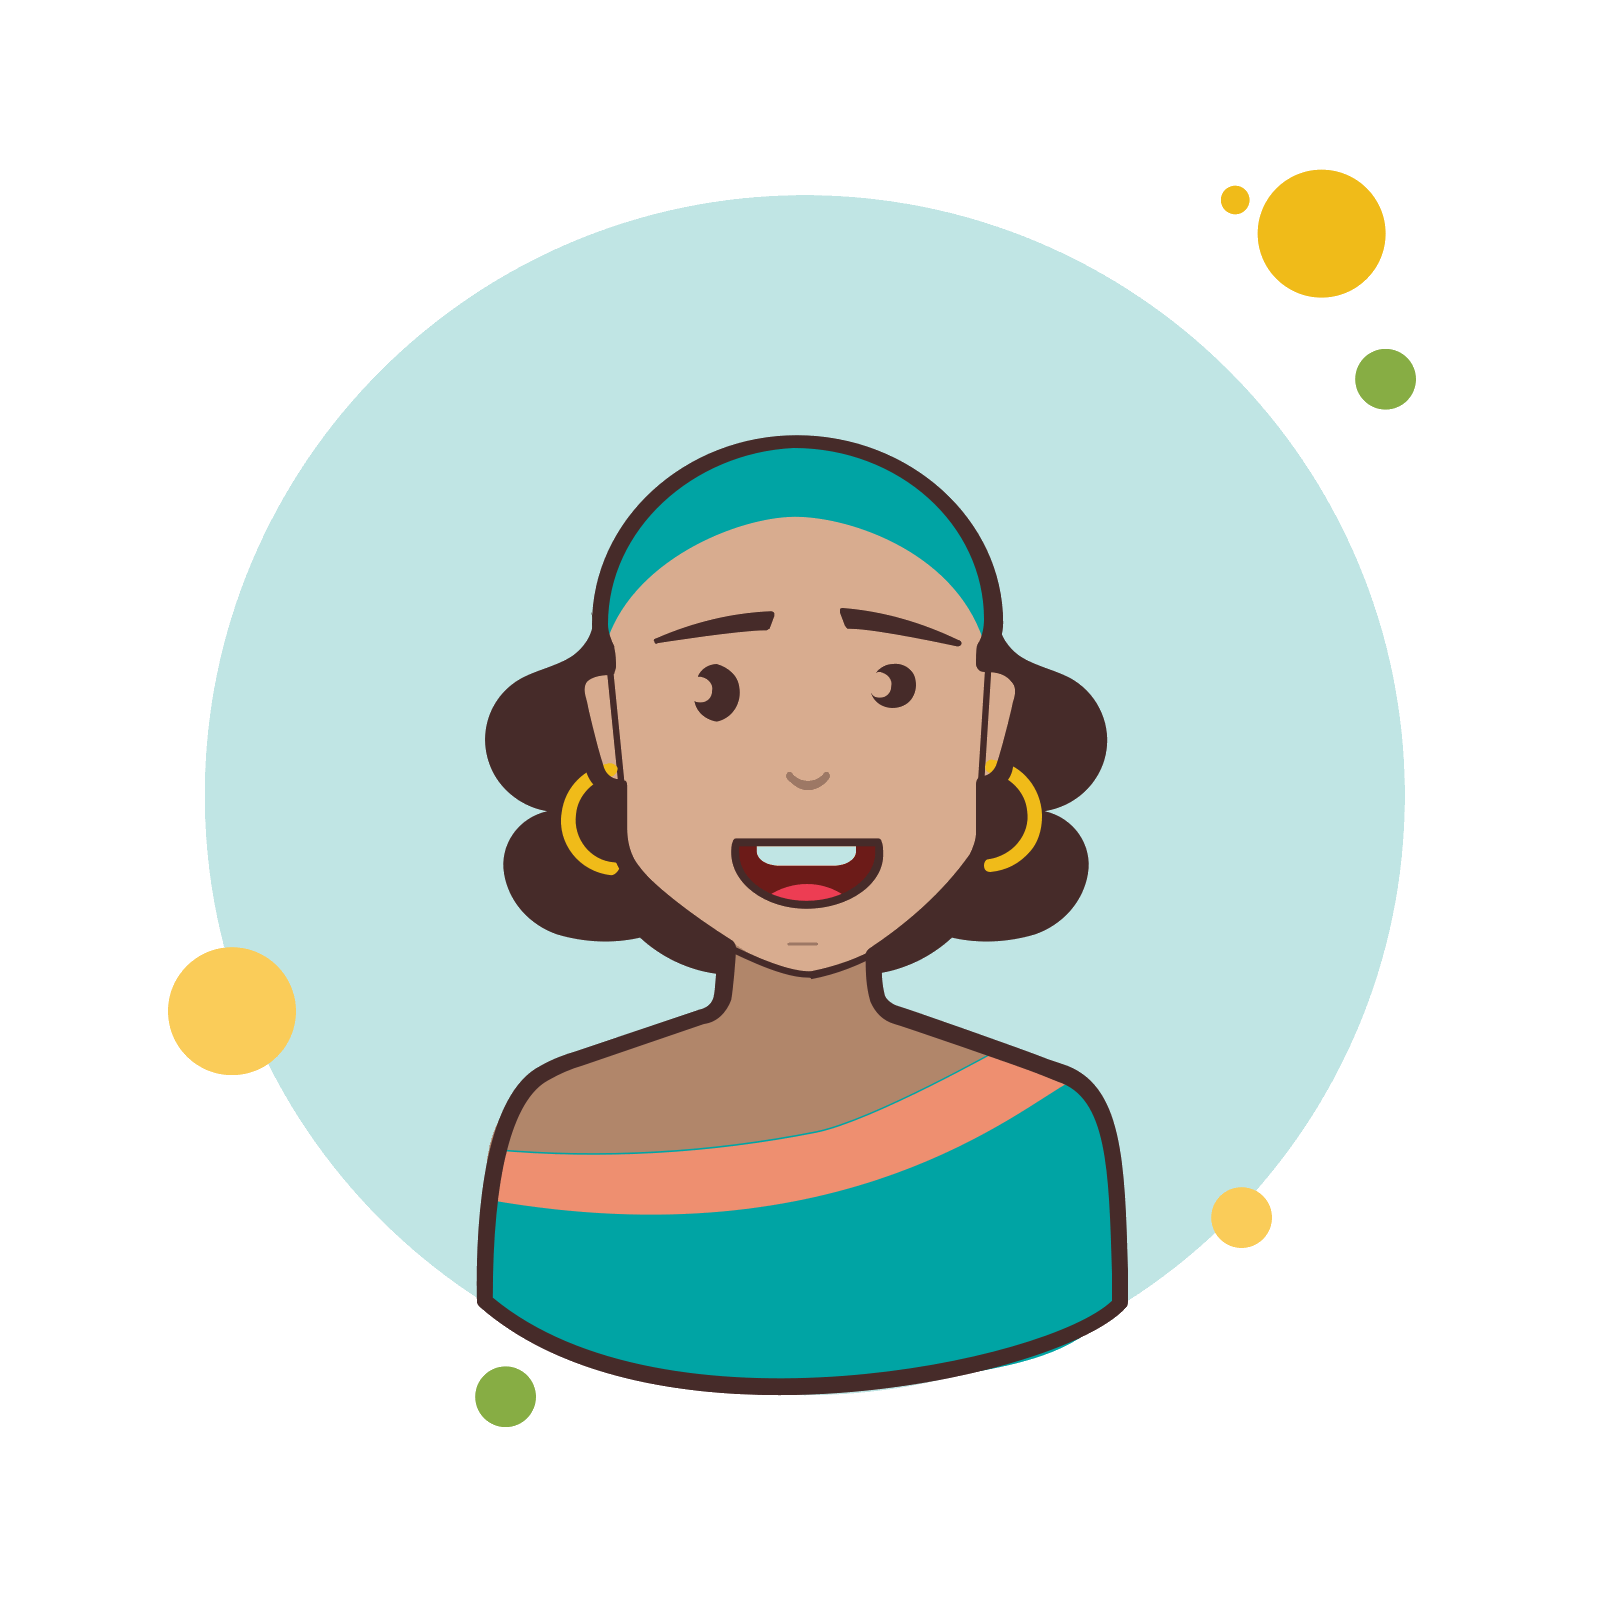 Earring vector illustration. Brown curly hair lady